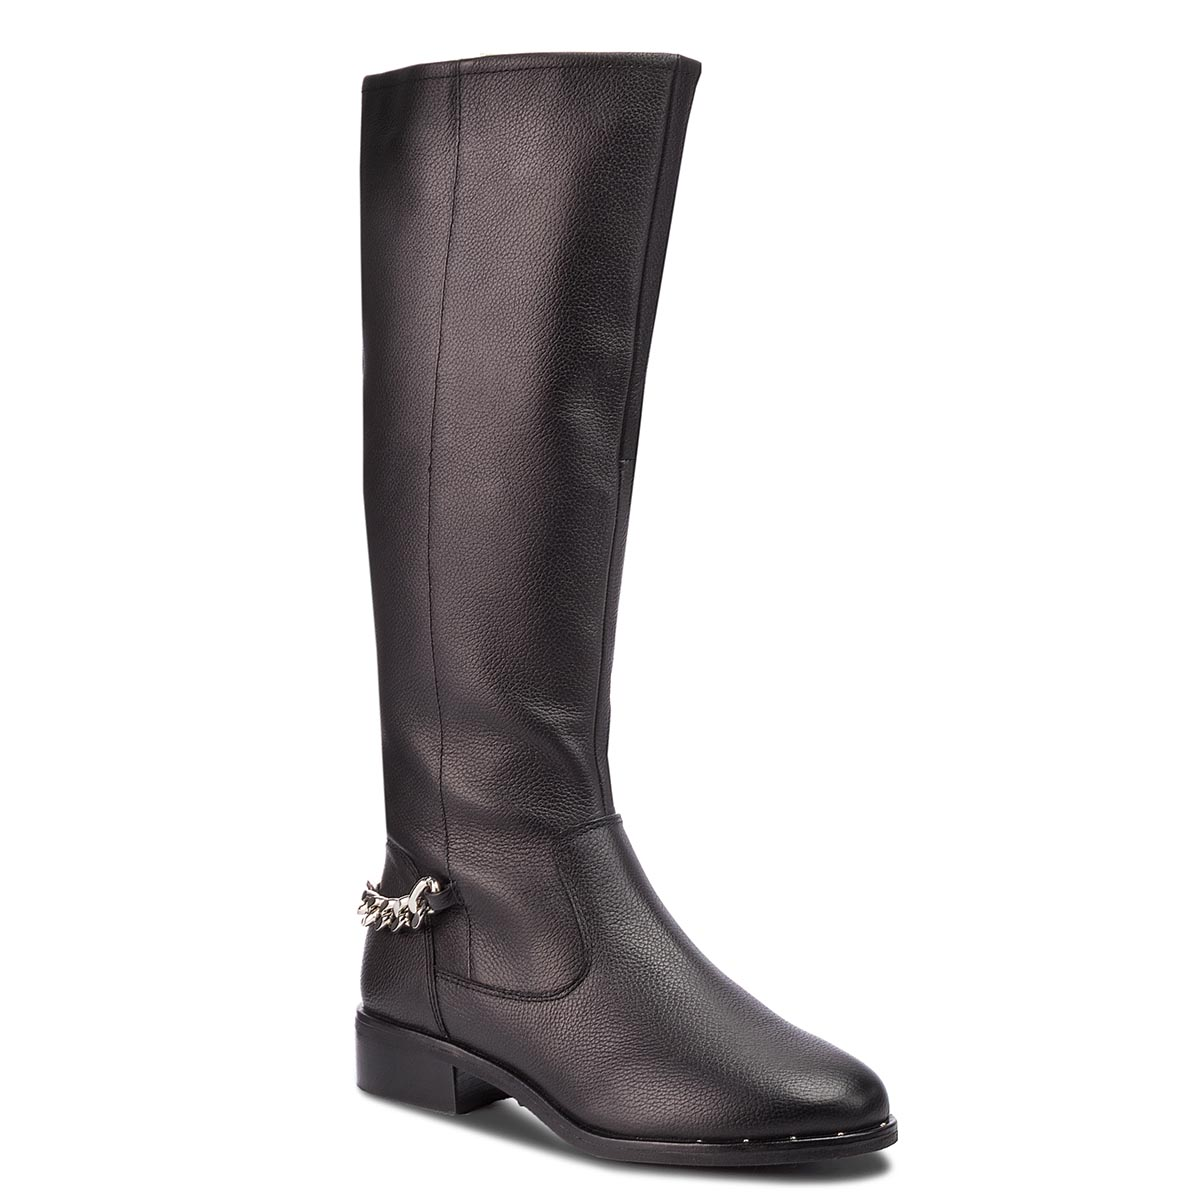 Cizme lungi riding STEVE MADDEN - Rain Boot SM11000180-03001-017 Black Leather